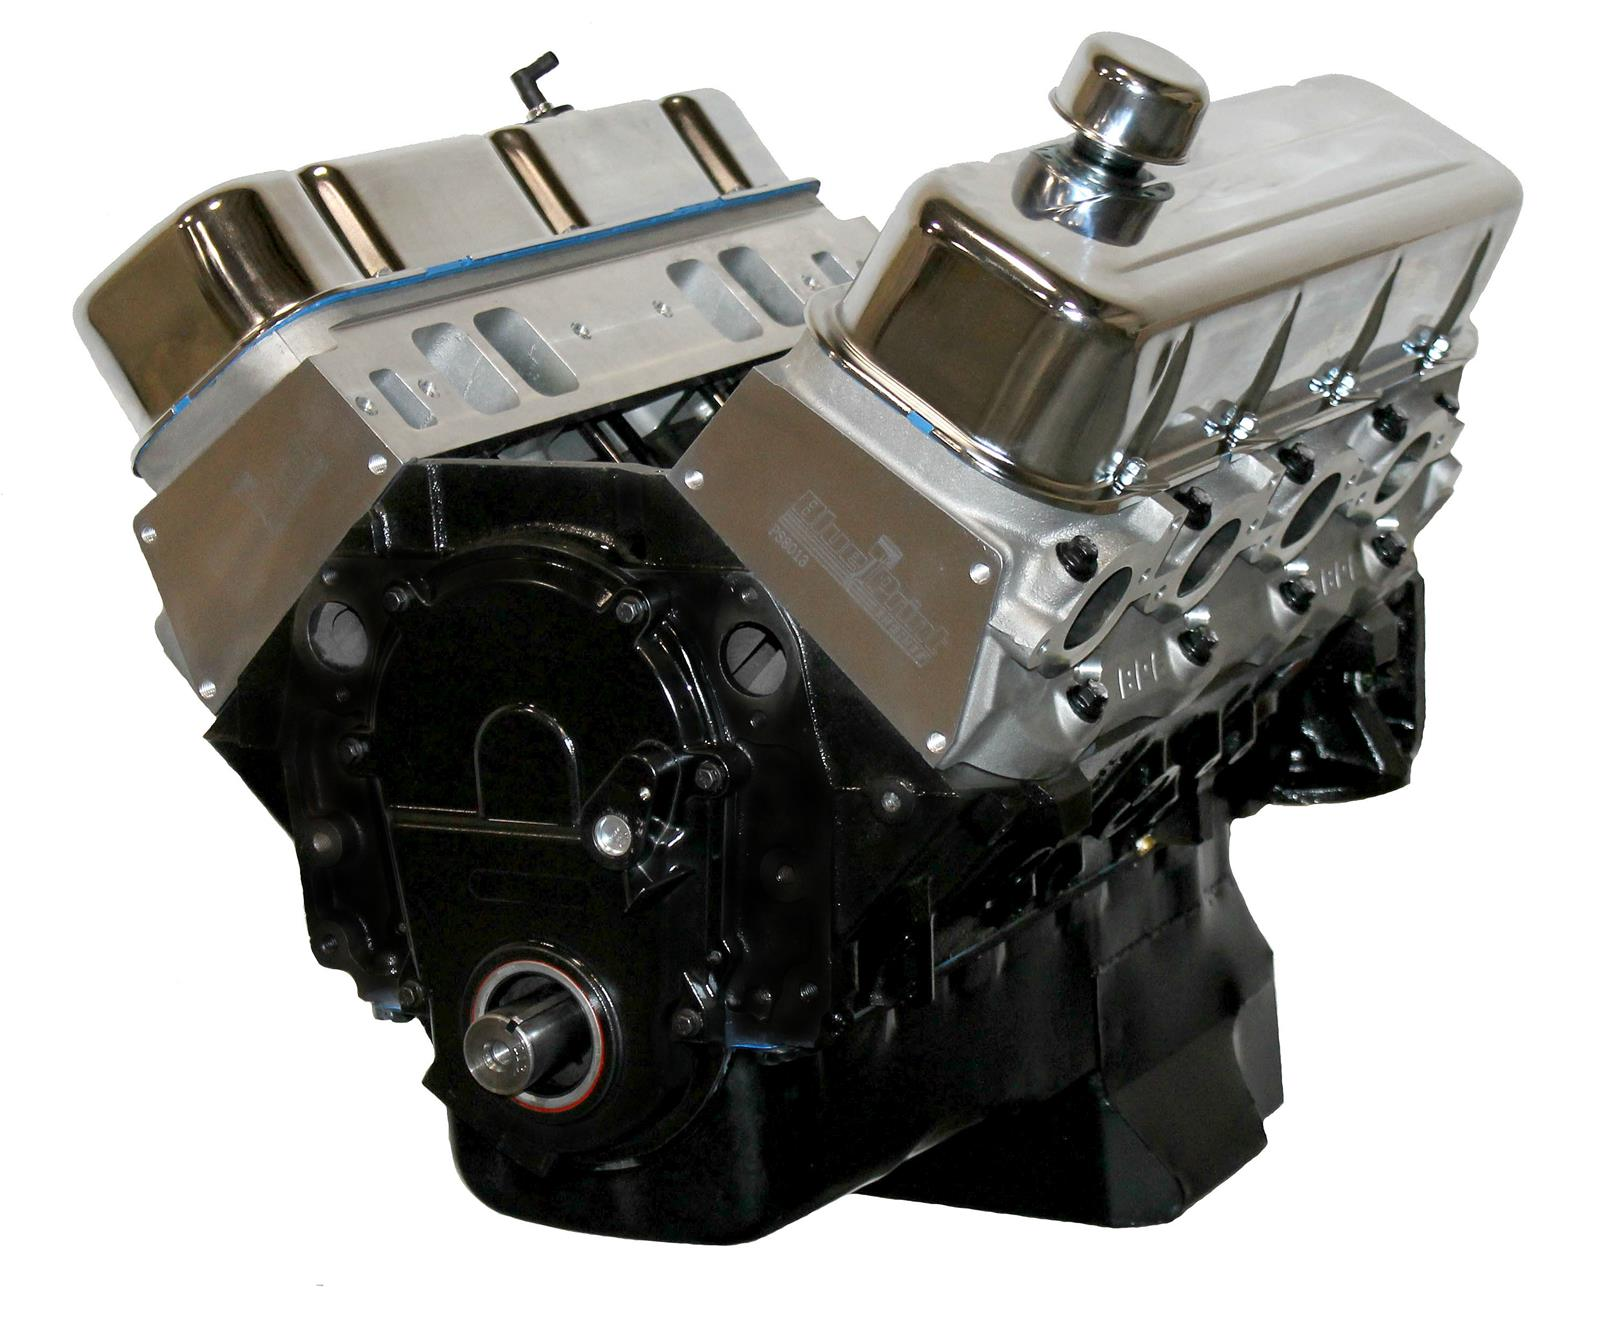 BluePrint Engines GM 496 C I D  575 HP Stroker Base Long Block Crate  Engines with Aluminum Heads BP4967CT